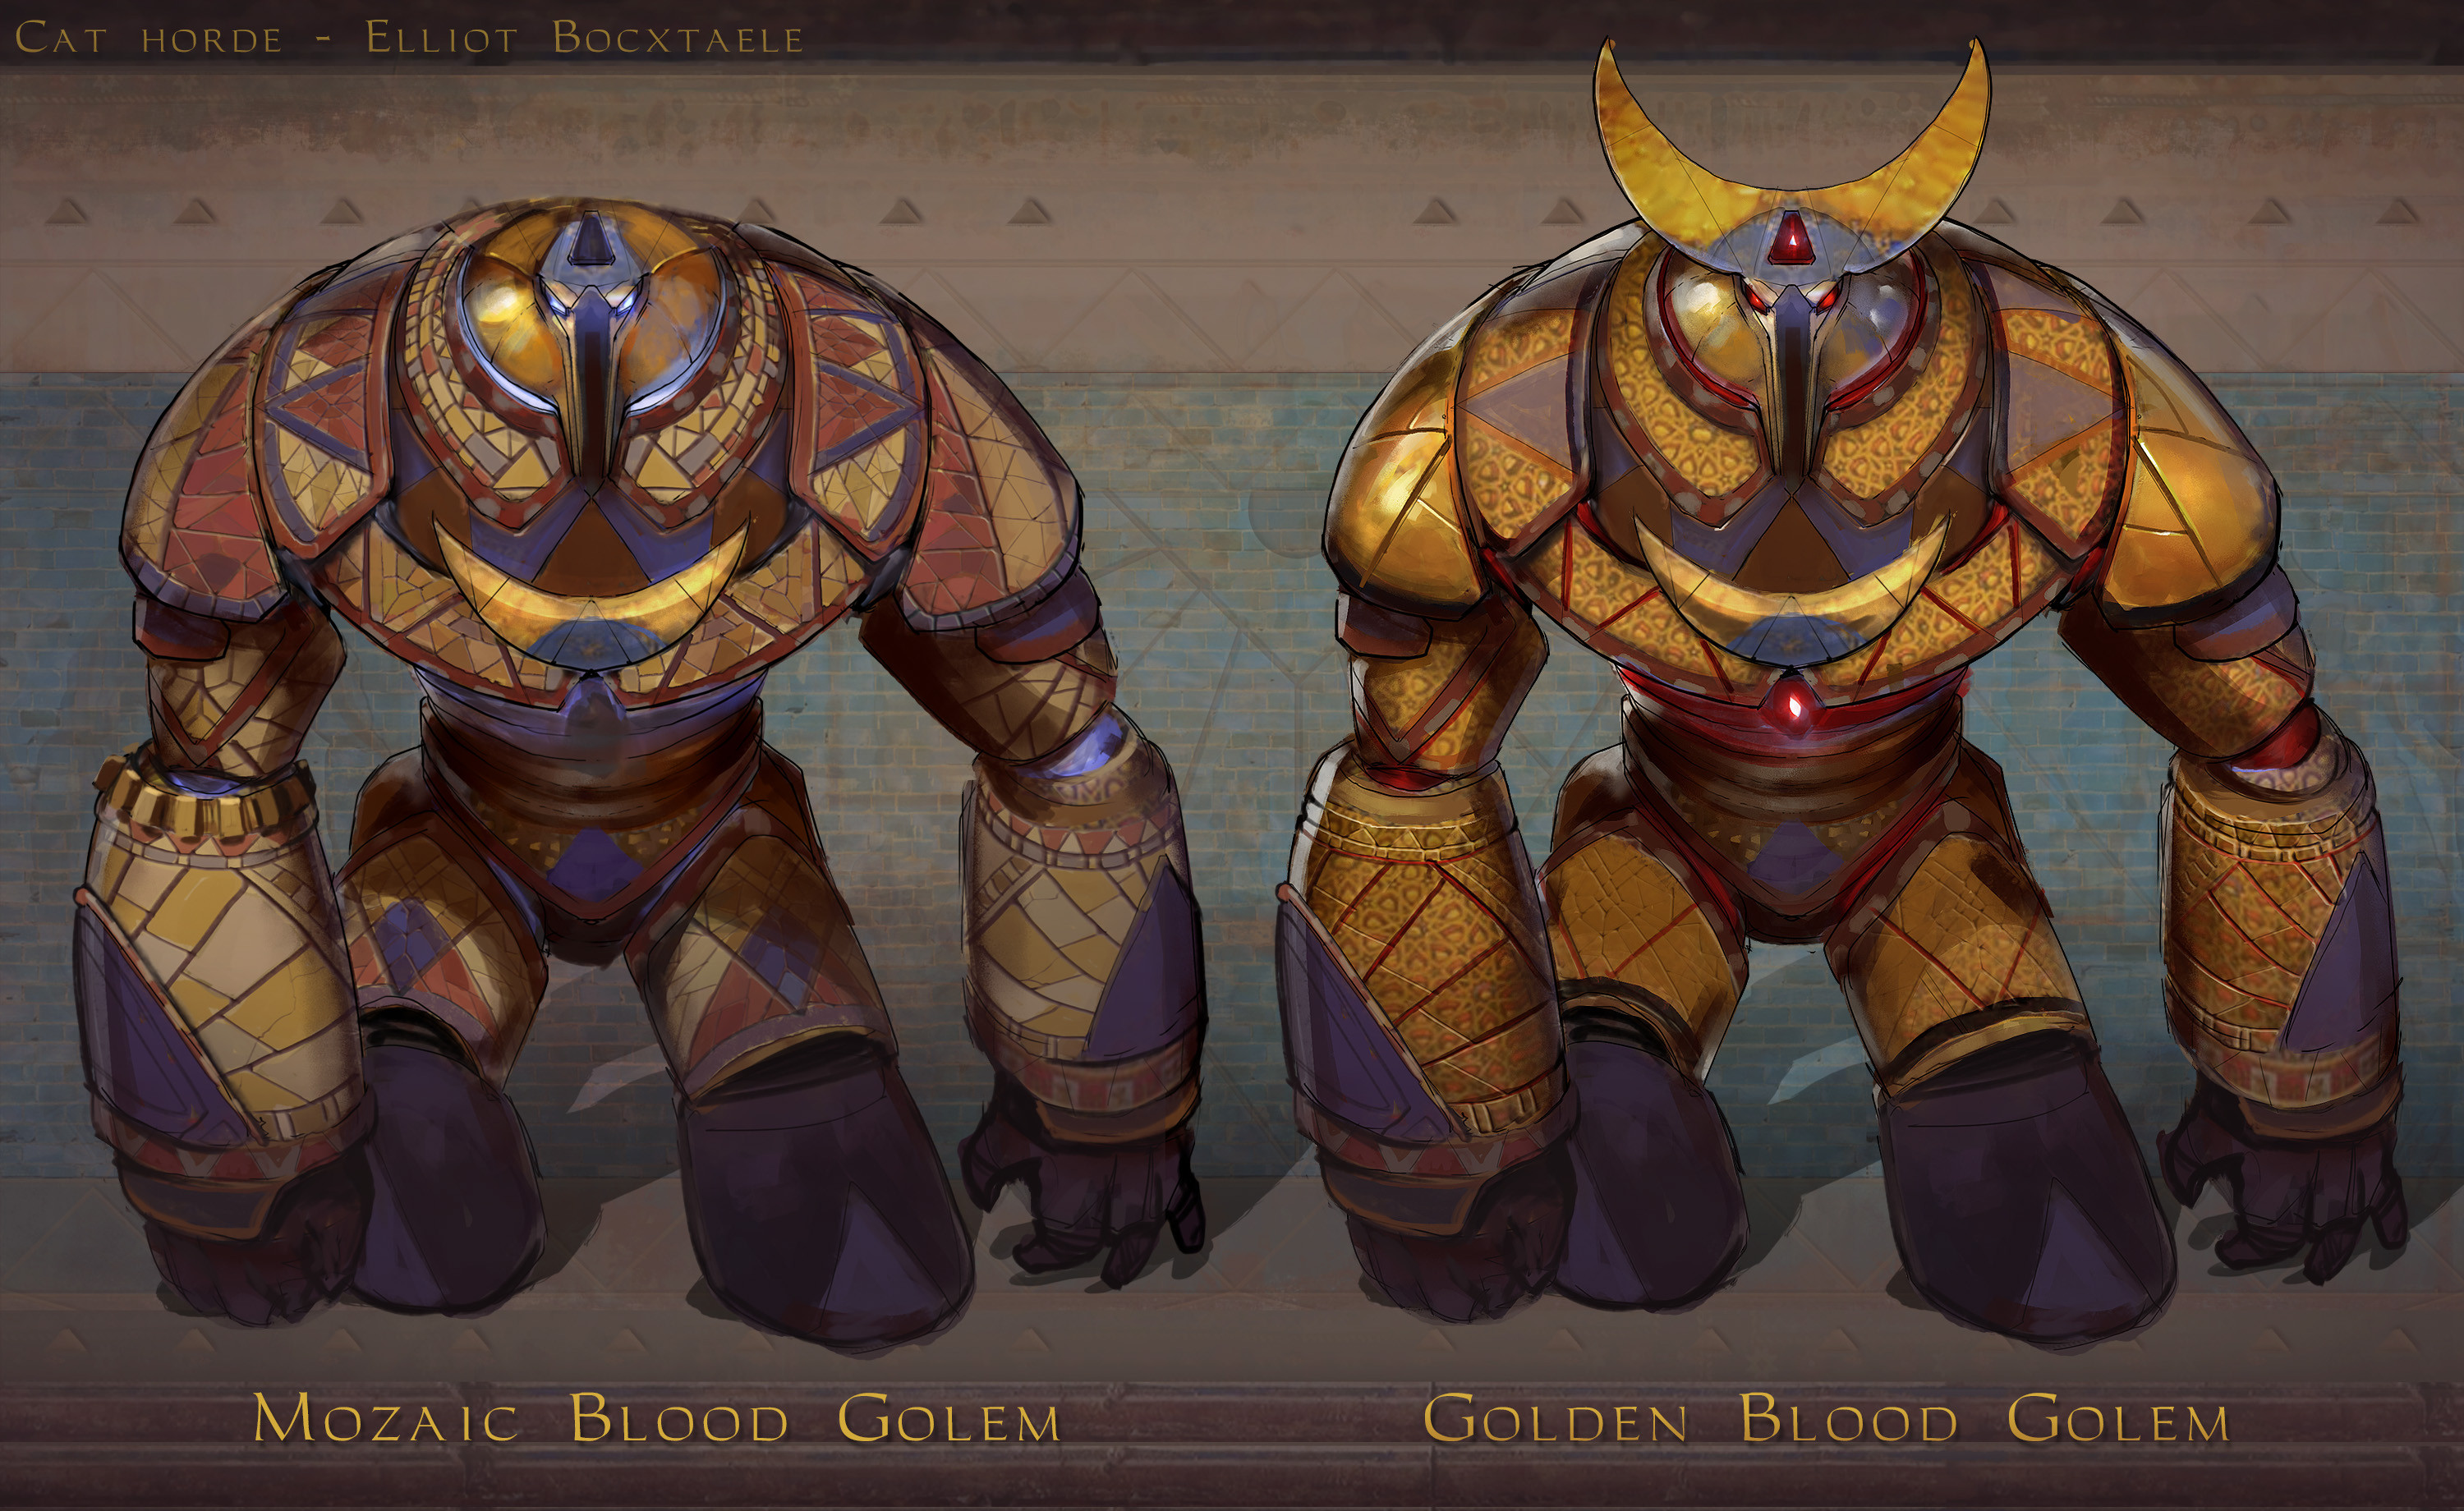 TIER 5 Mozaic Golem. The enigmatic Blood golems are constructed by the skilled craftsmen of the Cat hordes. The Blood Mages then bring them to life by intricate blood rituals supplied from different animal sources, each specimen meticulously picked ...